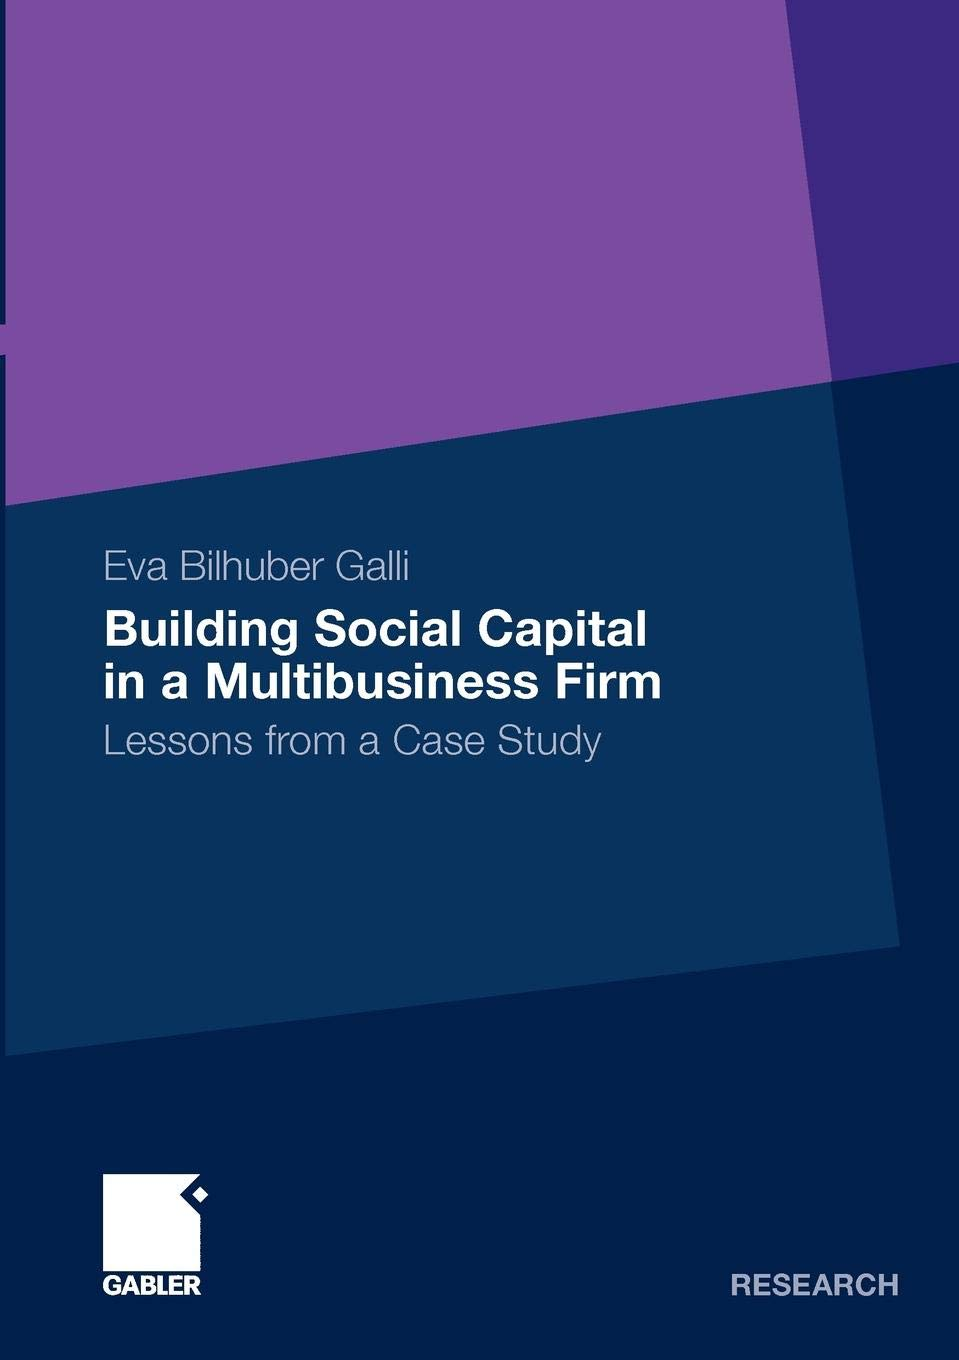 Building Social Capital in a Multibusiness Firm: Lessons from a Case Study